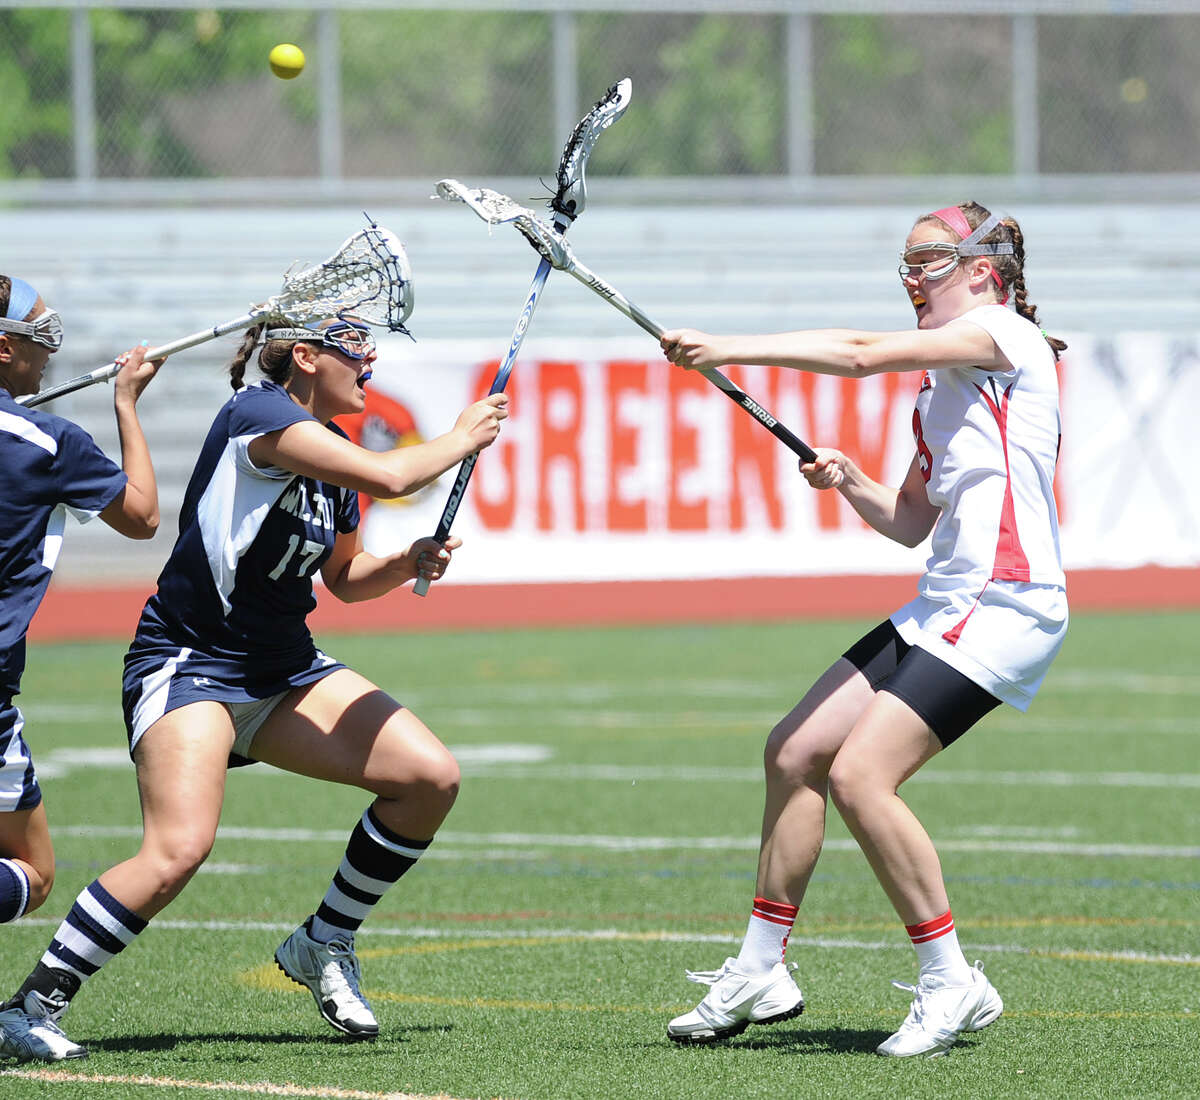 Claire Feeney, right, of Greenwich, scores a first half goal during the girls high school lacrosse match between Wilton High School and Greenwich High School at Greenwich, May 12, 2012. Wilton won the match 18-9. Covering on the play for Wilton is Liz Reda # 17.